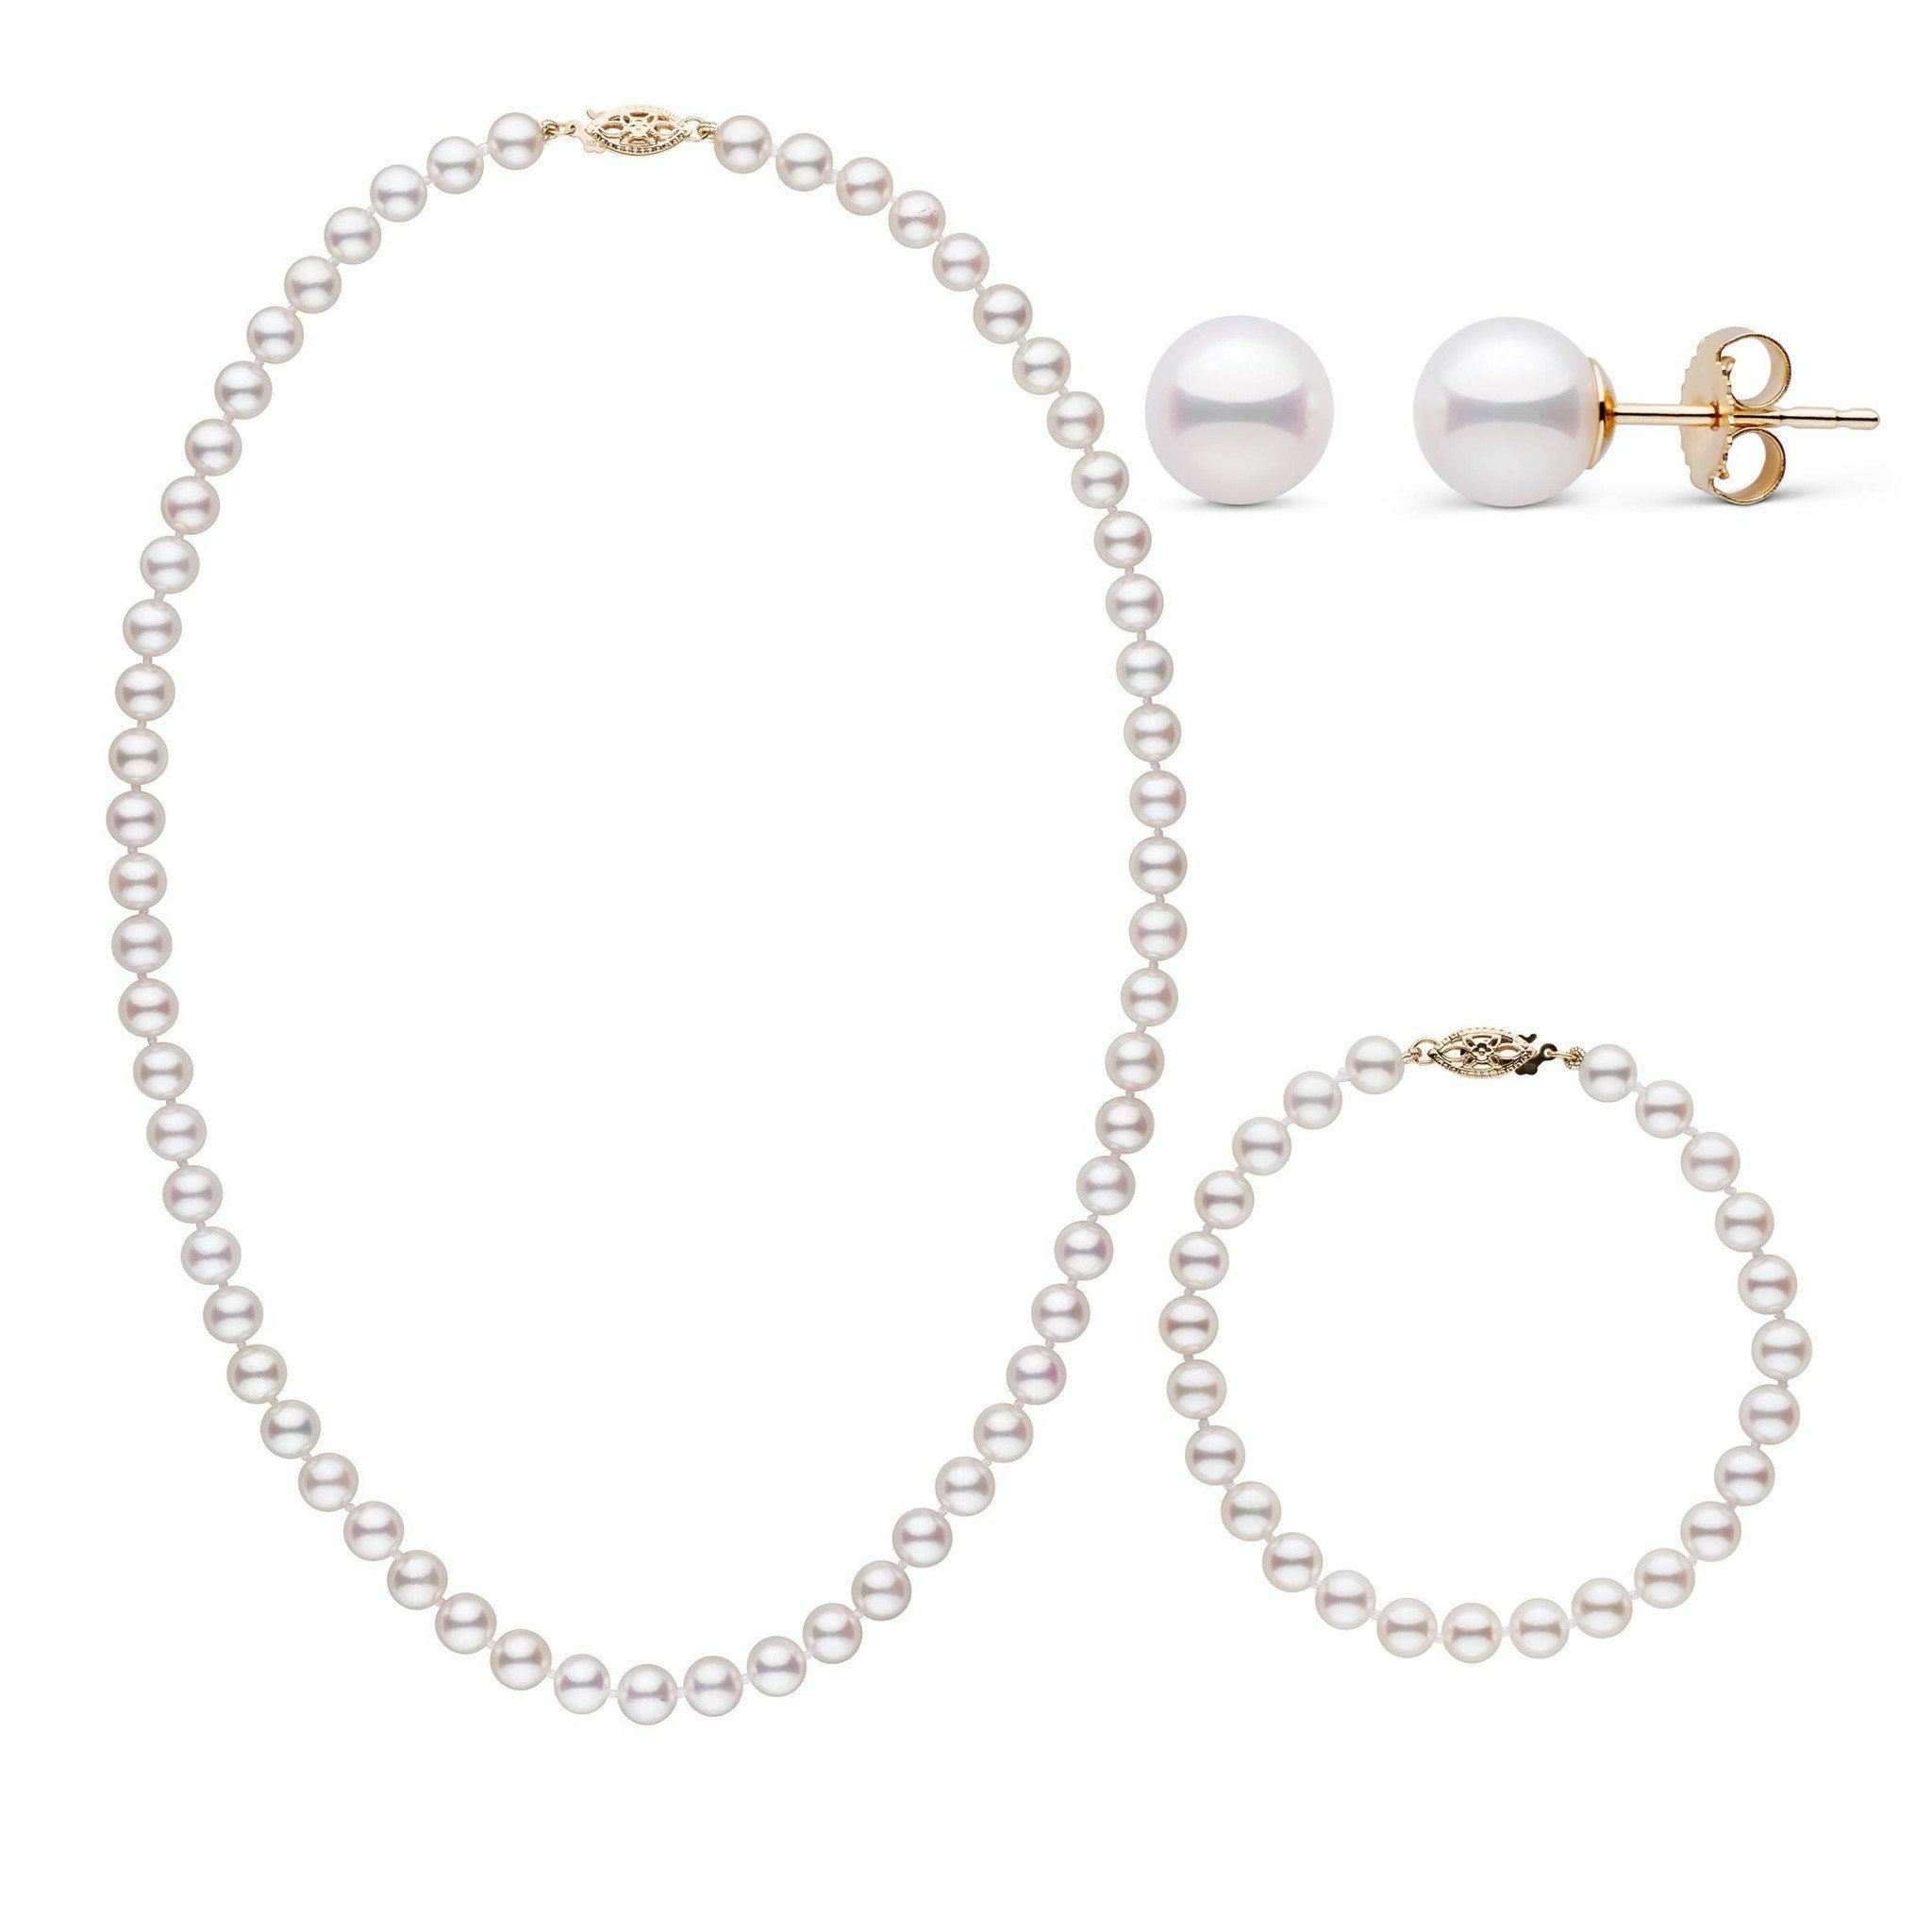 18 Inch 3 Piece Set of 6.0-6.5 mm AAA White Akoya Pearls